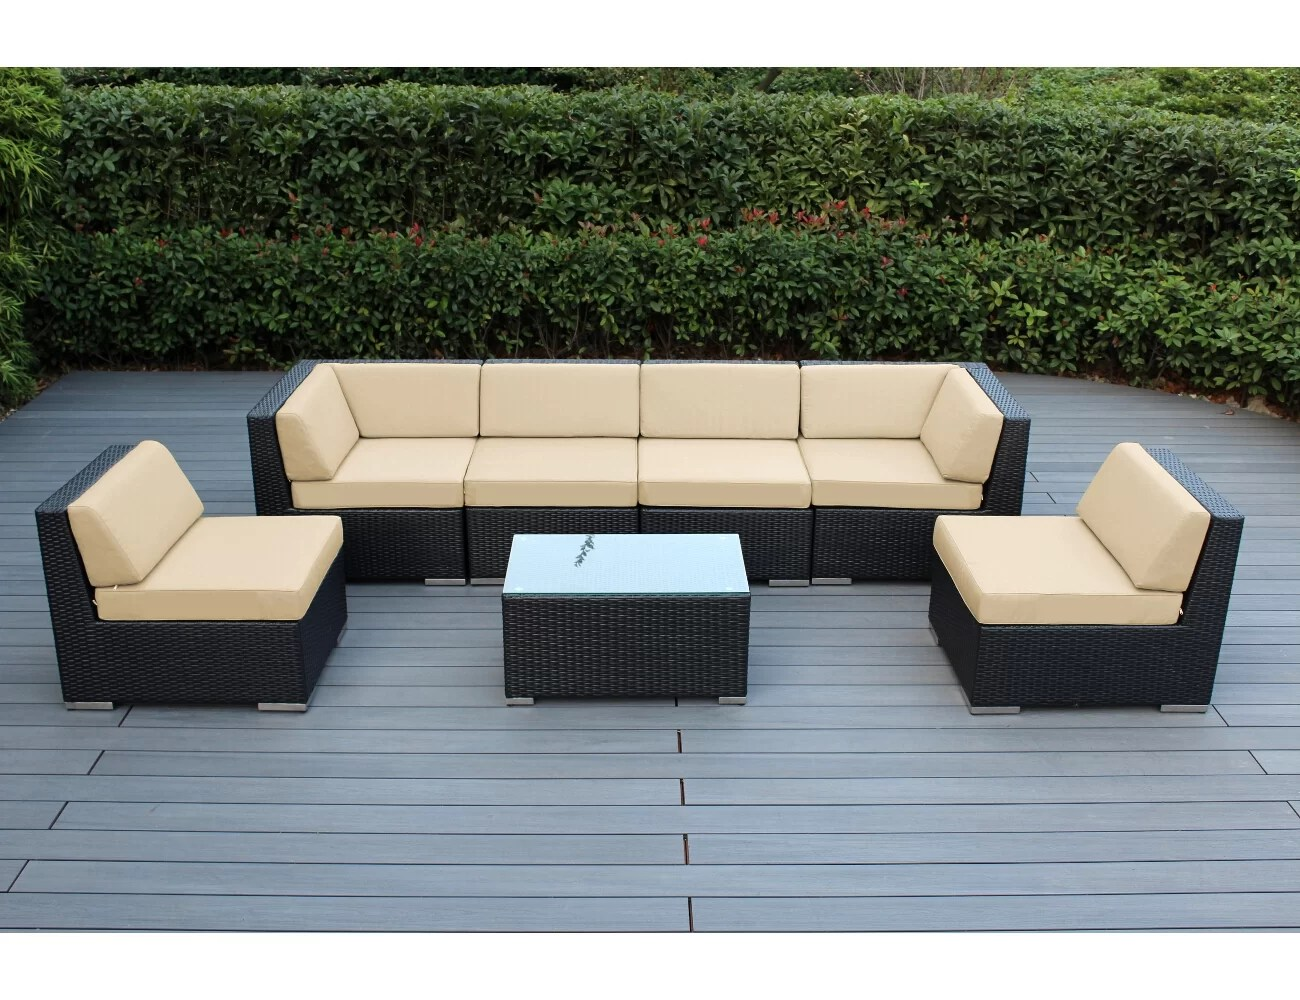 Urban Sofa Barneveld Barneveld 7 Piece Sectional Seating Group With Cushions